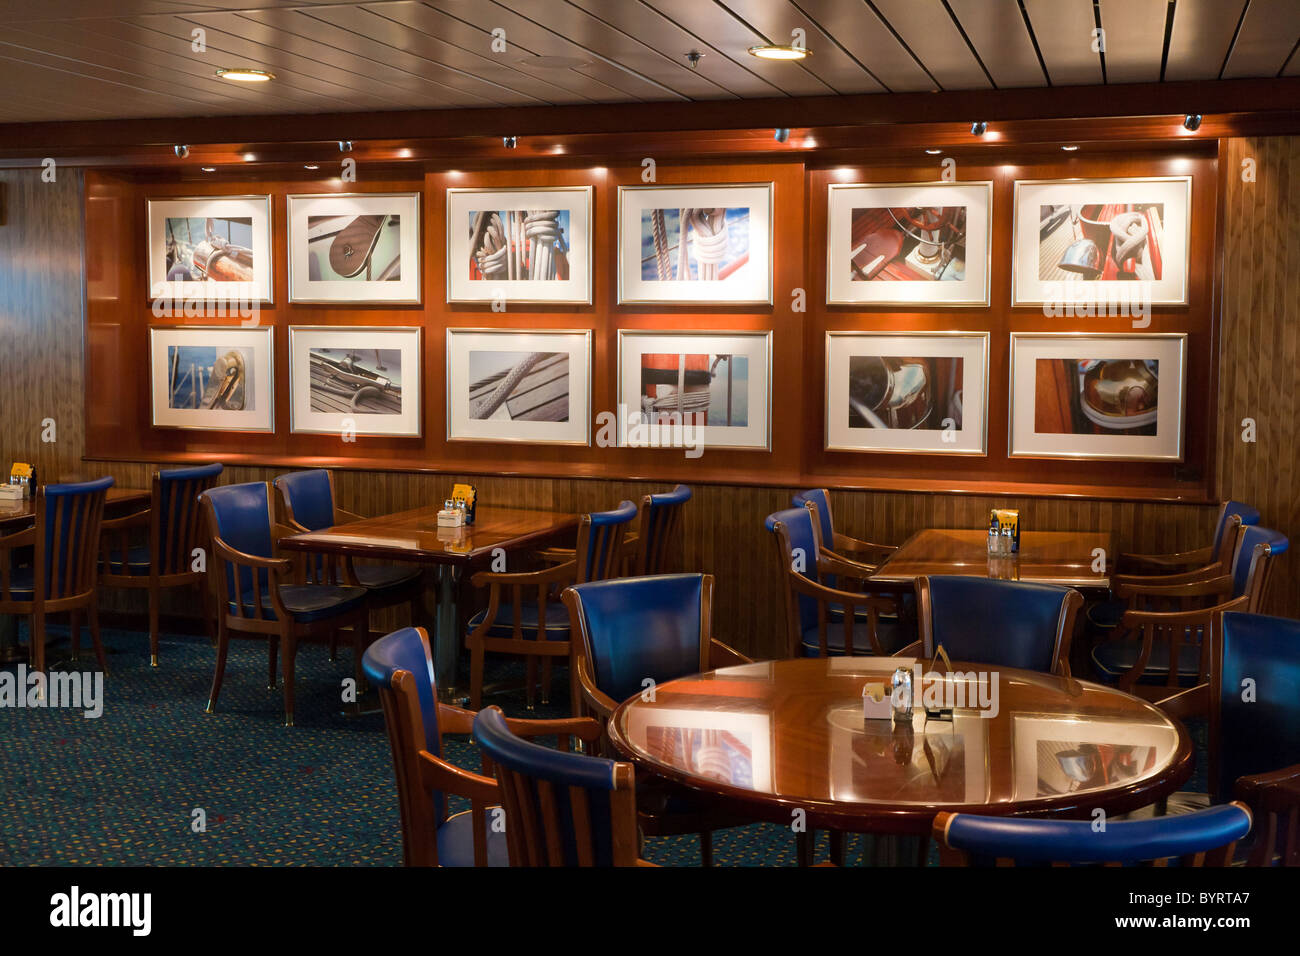 Nautical Art Decor High Resolution Stock Photography And Images Alamy